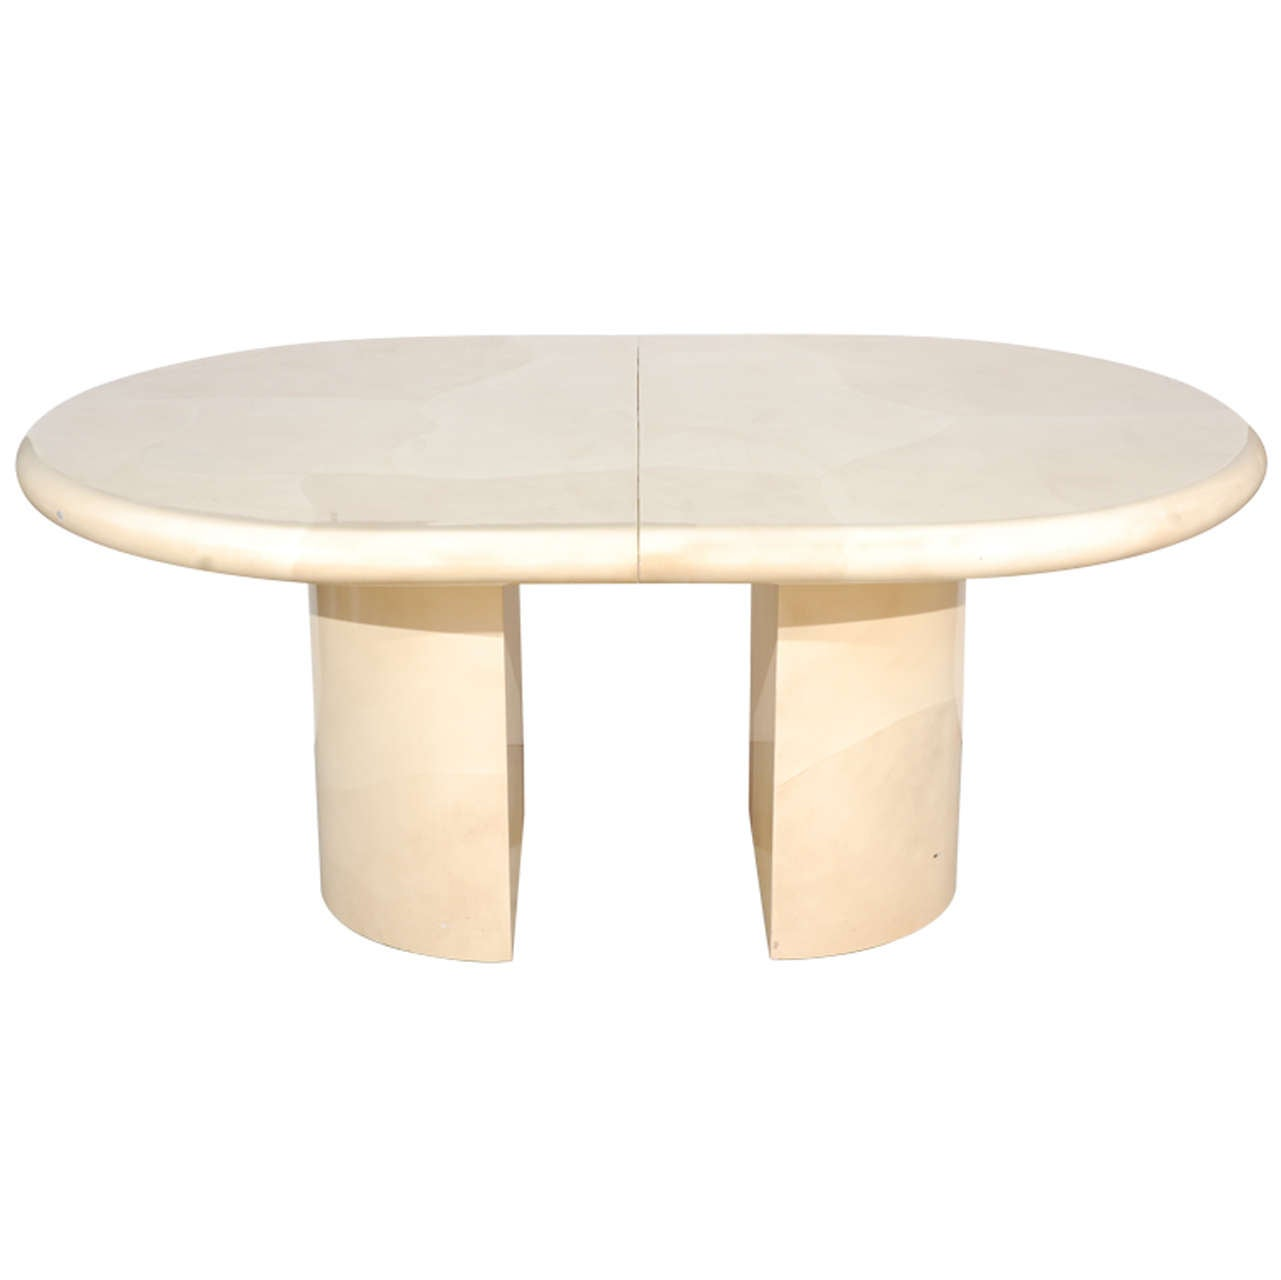 Karl Springer–style faux goatskin dining table, 1970s